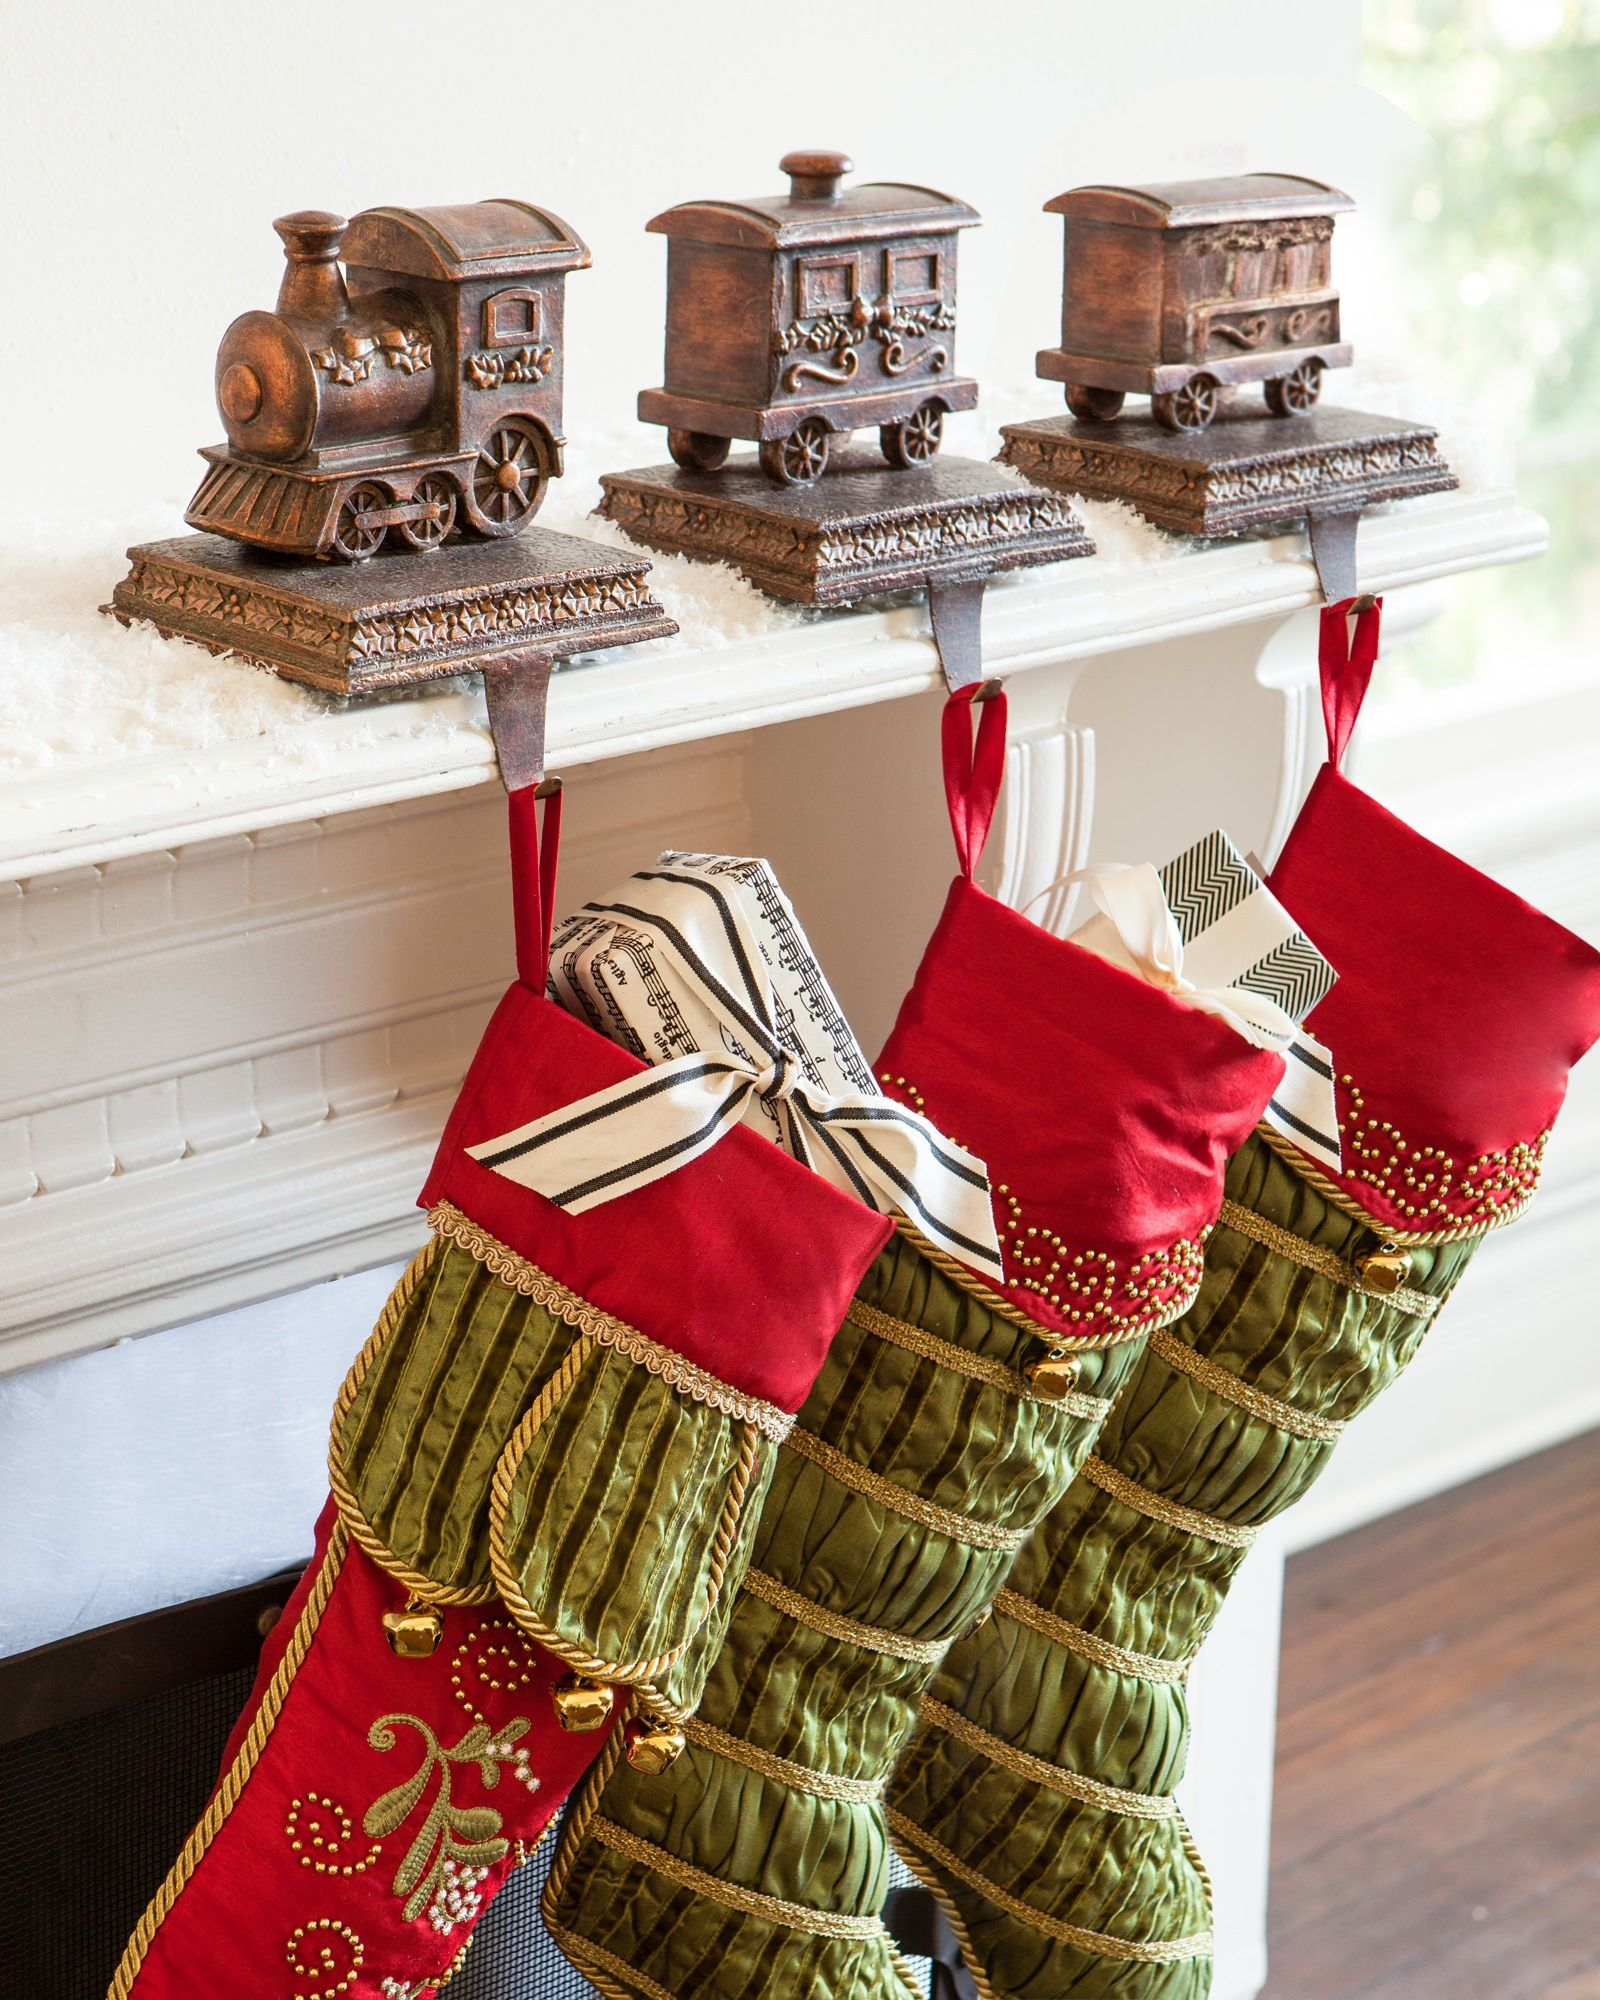 Stocking holders and Stockings